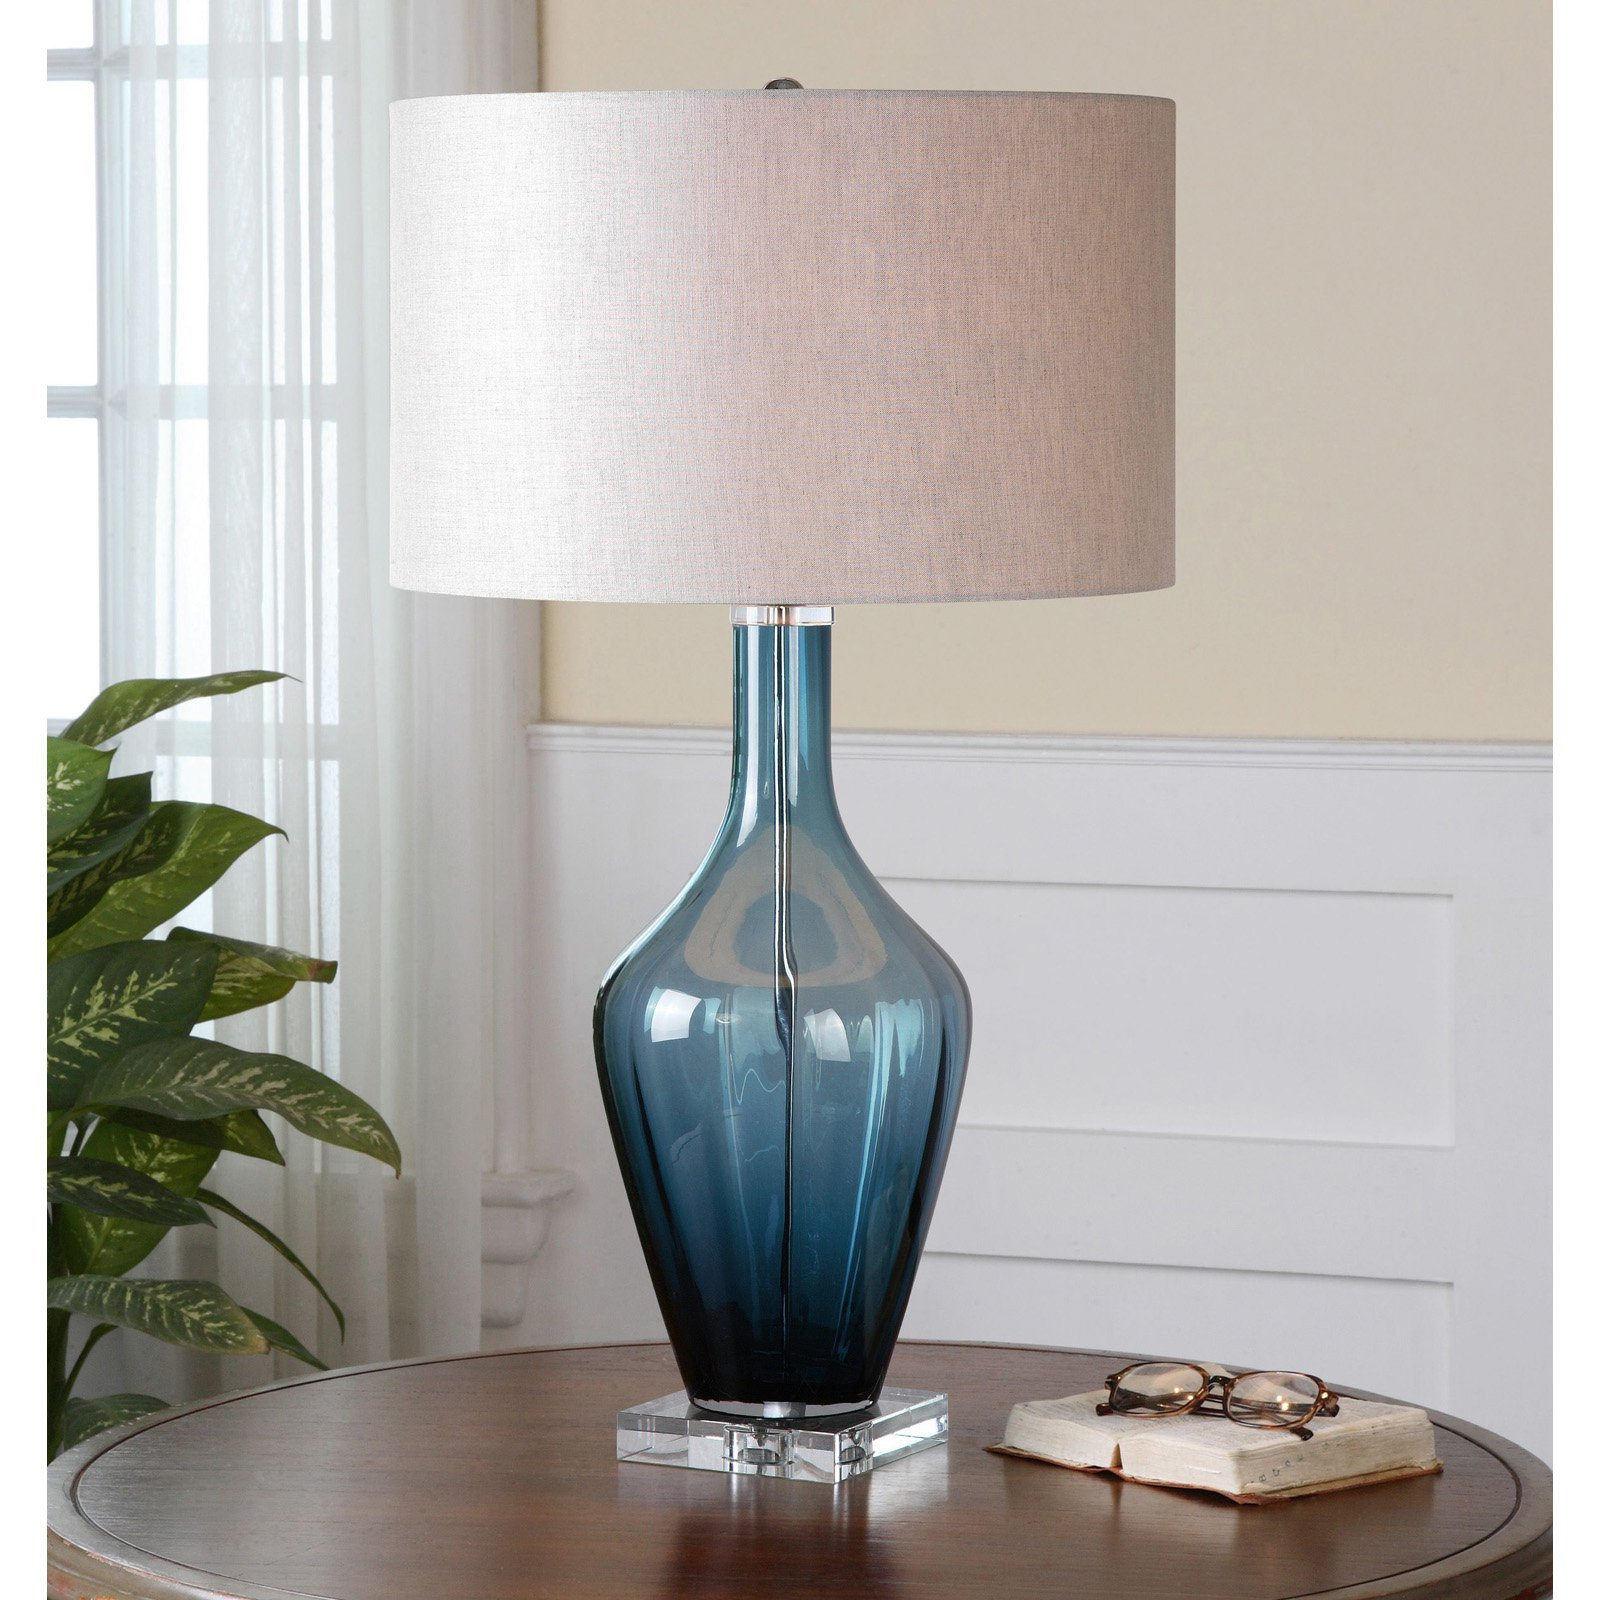 Uttermost Hagano 26191 1 Blue Glass Table Lamp Walmart Com